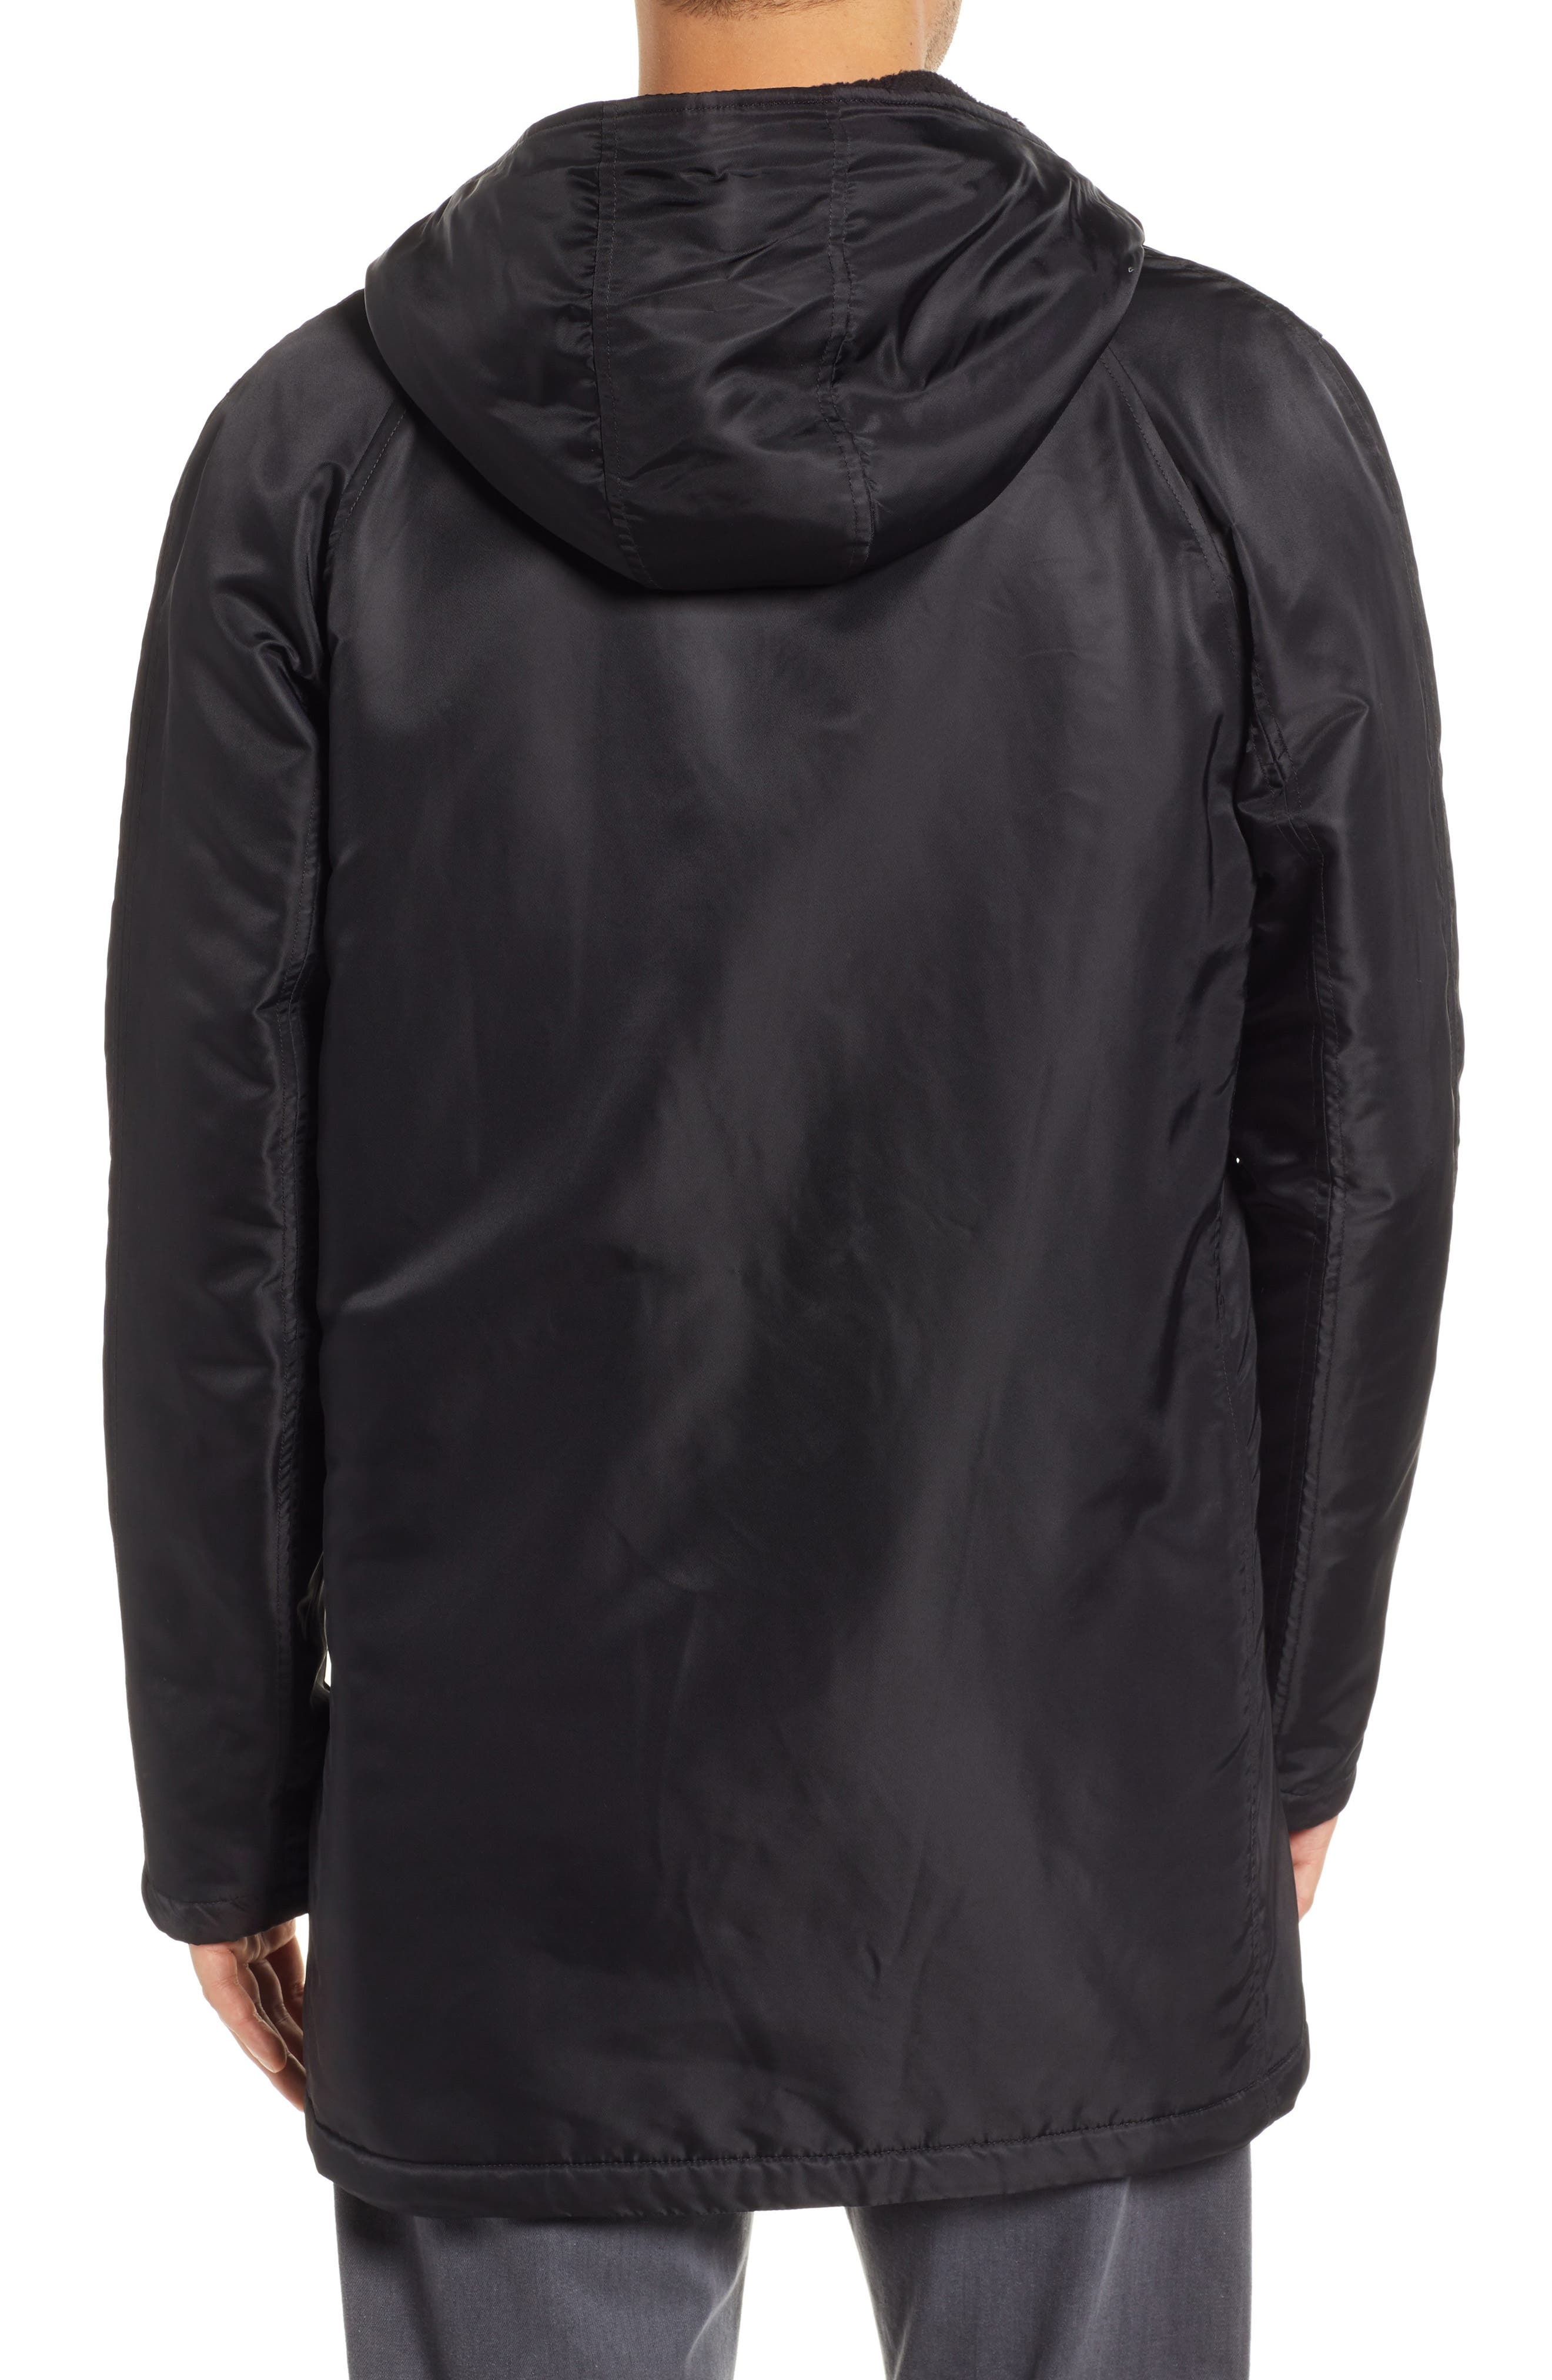 REIGNING CHAMP, Water Resistant Insulated Parka, Alternate thumbnail 2, color, 001